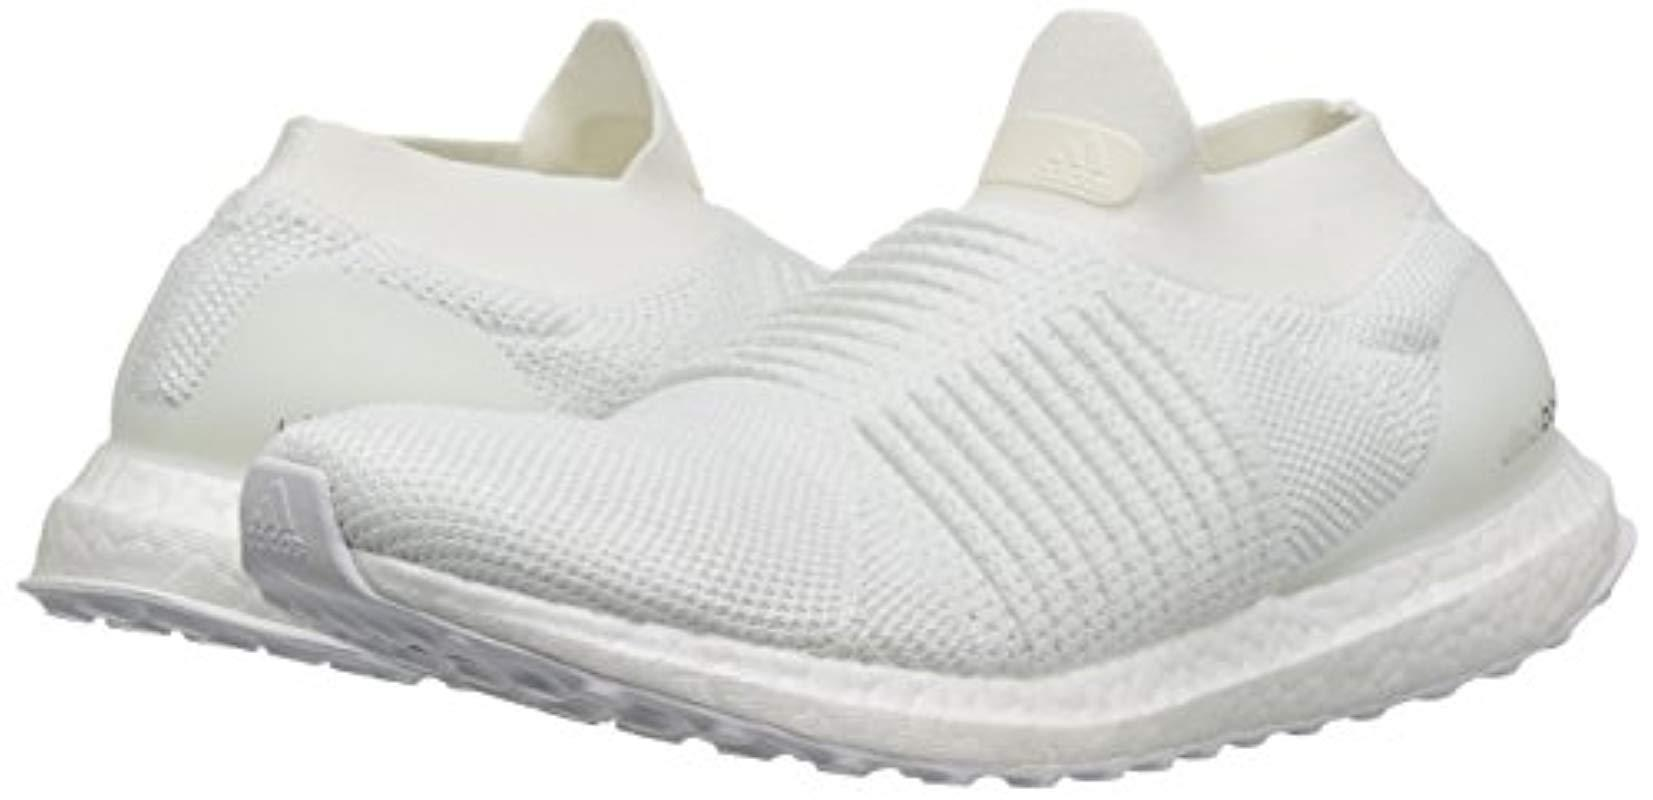 adidas Ultraboost Laceless Shoes in